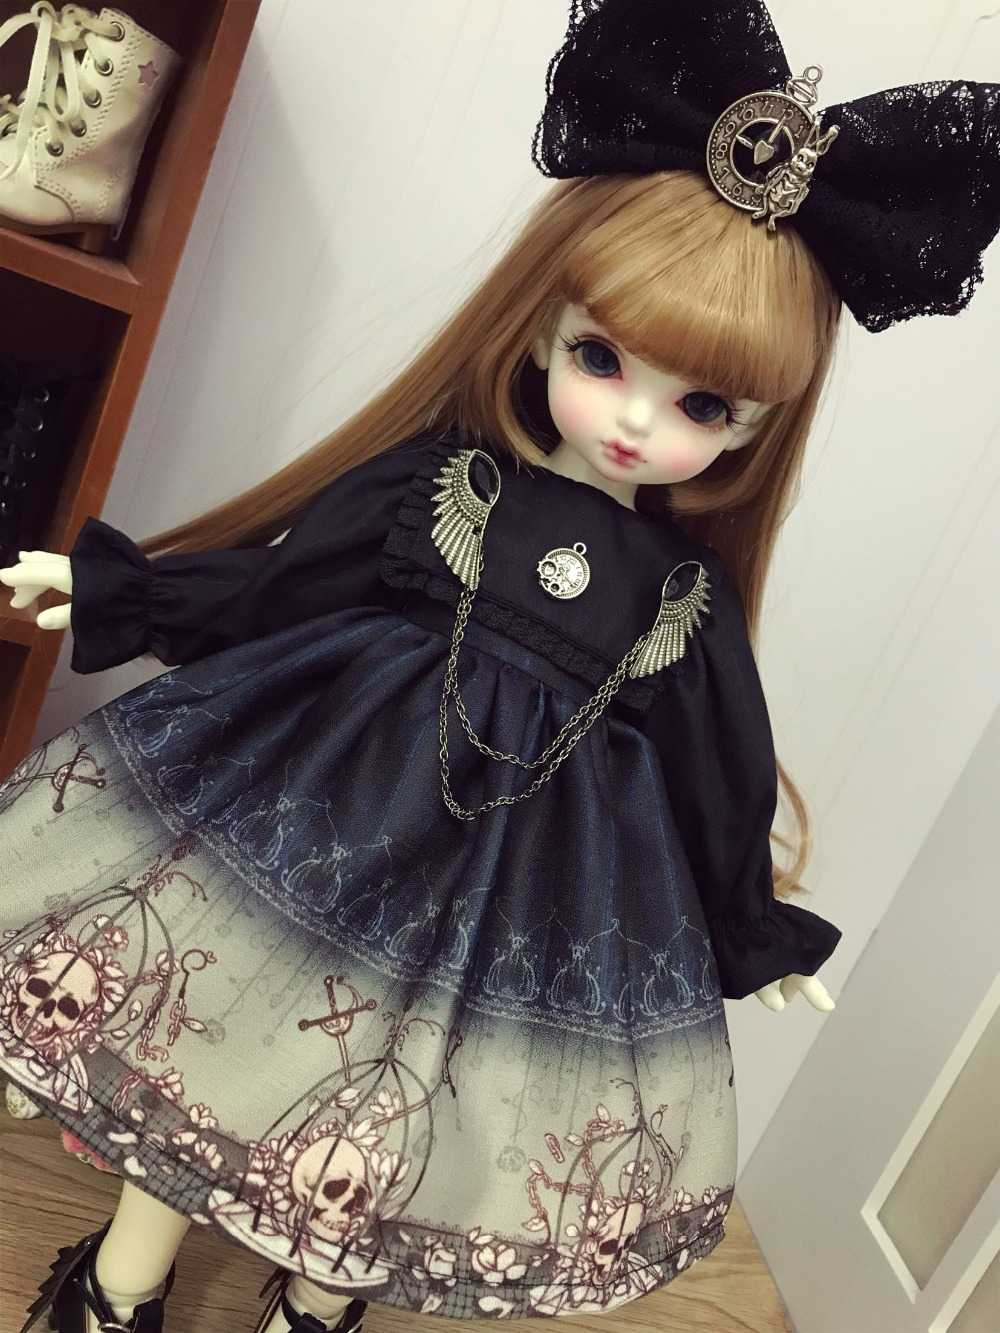 14 16 Slim Sd Bjd Doll Lolita Dress For 14 Msd Joint -7495